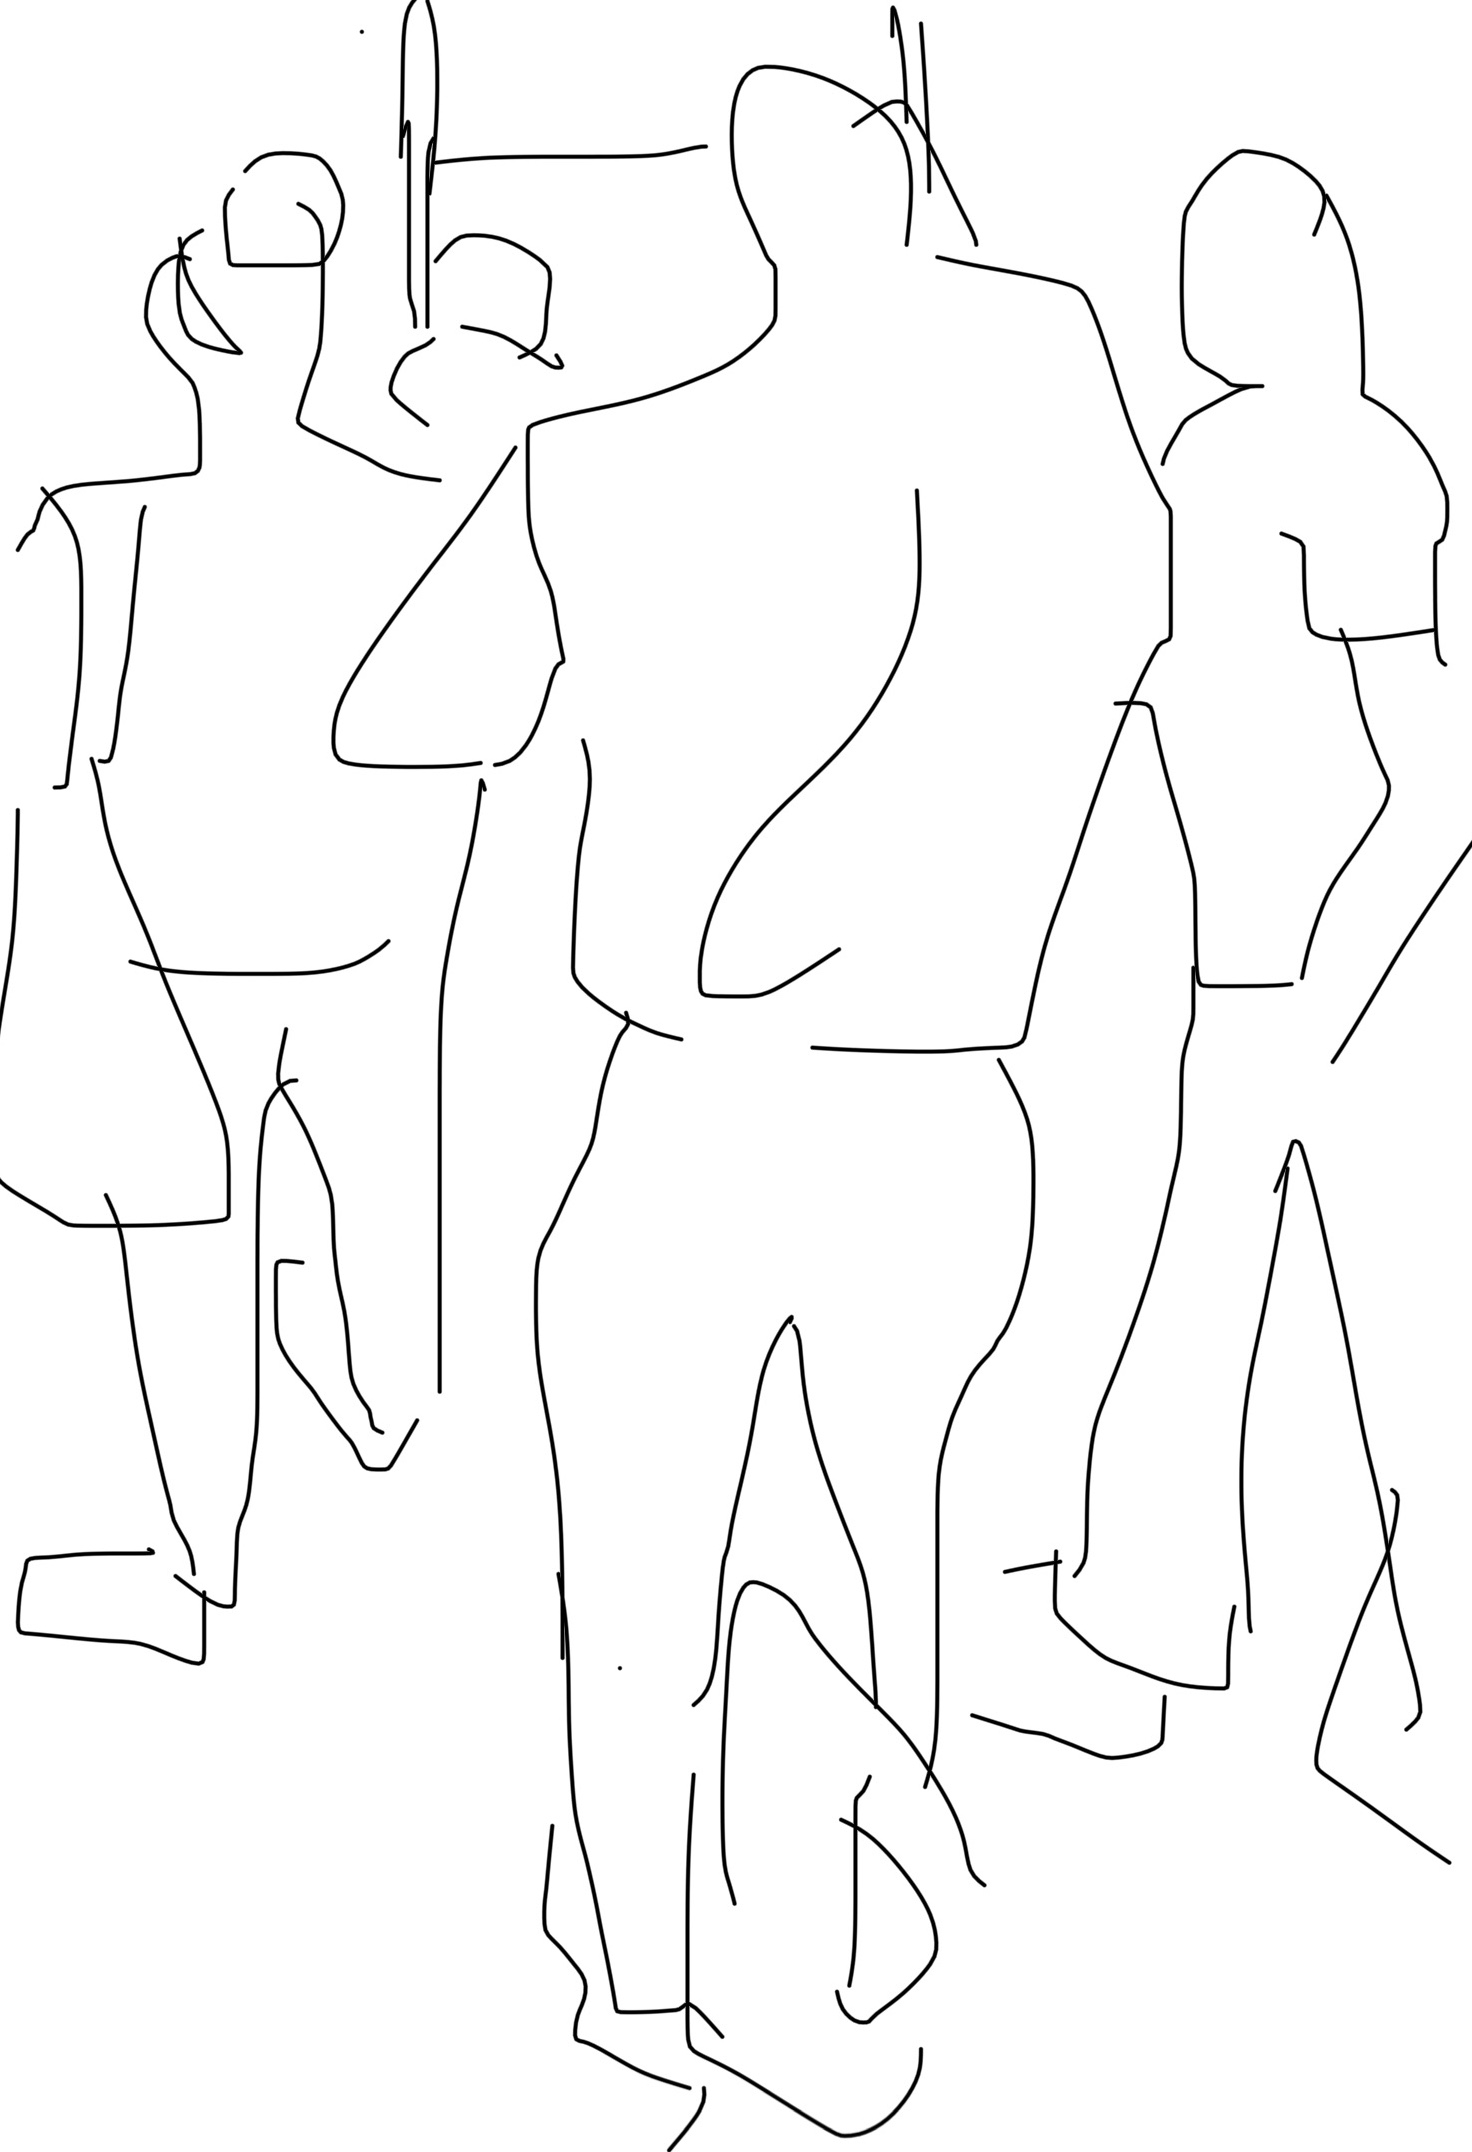 fig.2:    Commuters